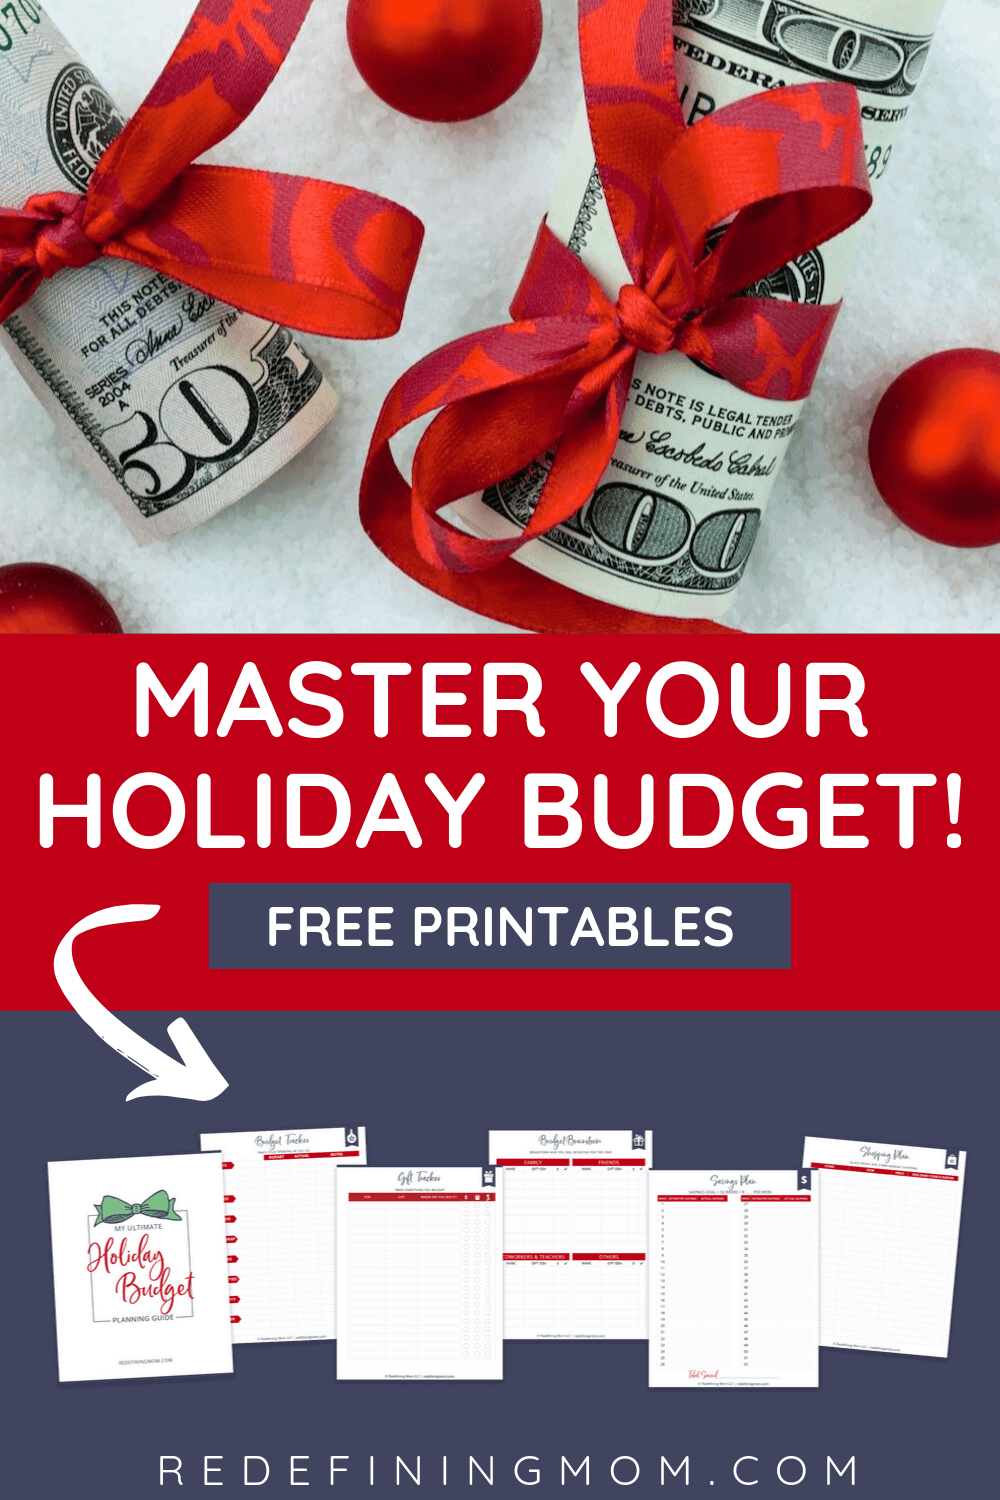 I am finally planning early this holiday season! I am so glad I found these free printable holiday budget planning sheets! I'm finally on track with my spending this holiday season. Enter your name and email for instant access.